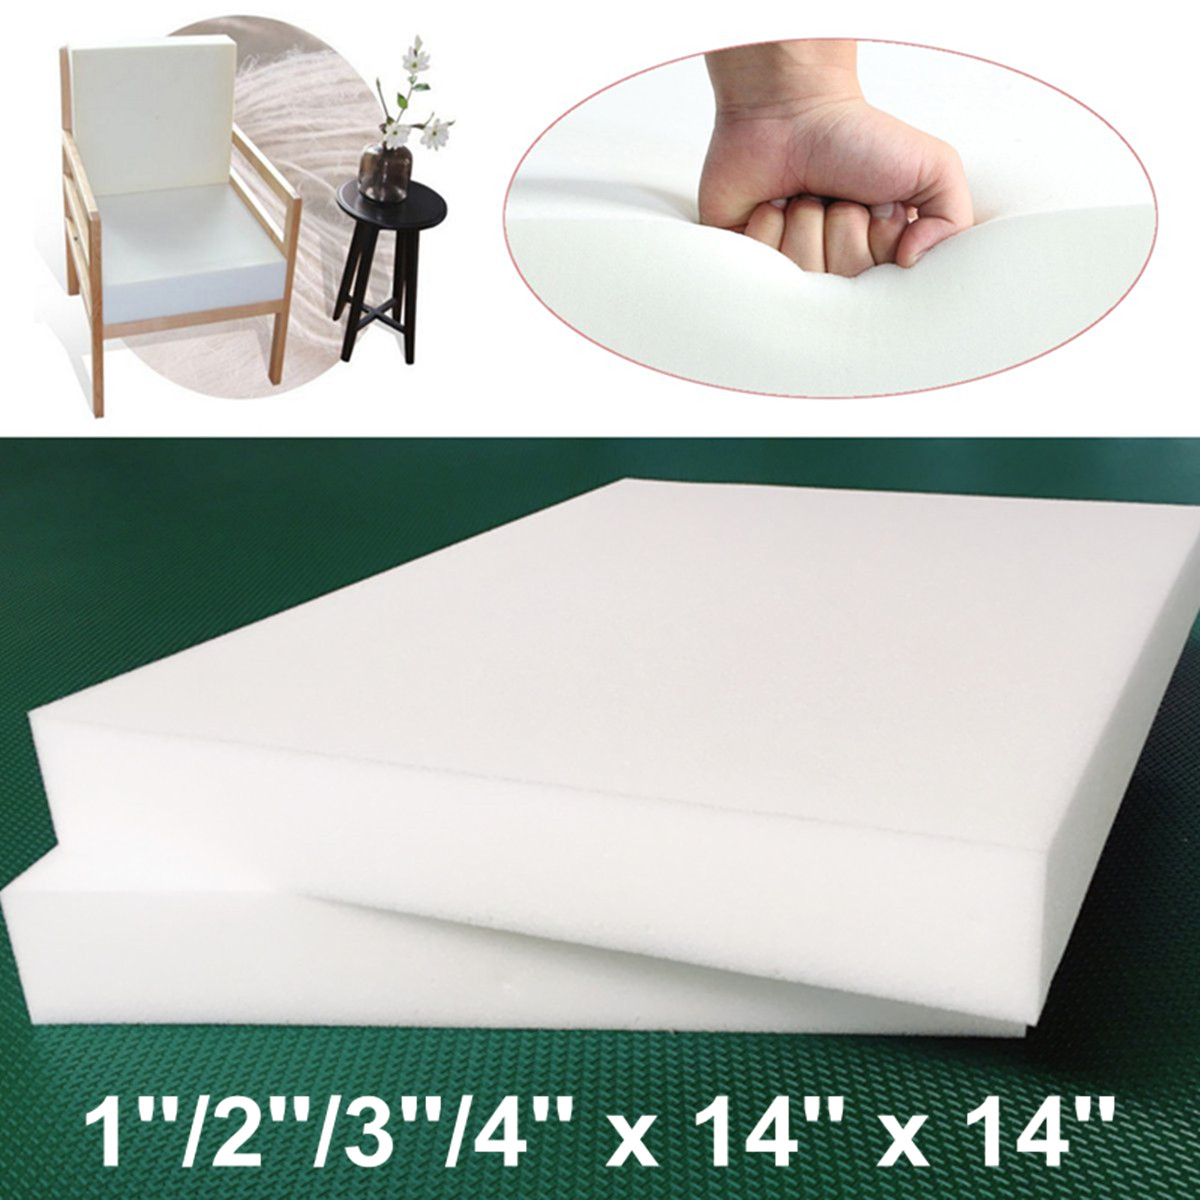 Square High-density Thickening Foam Mattress Hotel Student Mattress Cover Seat Foam Sheet Upholstery Cushion Replacement Pad